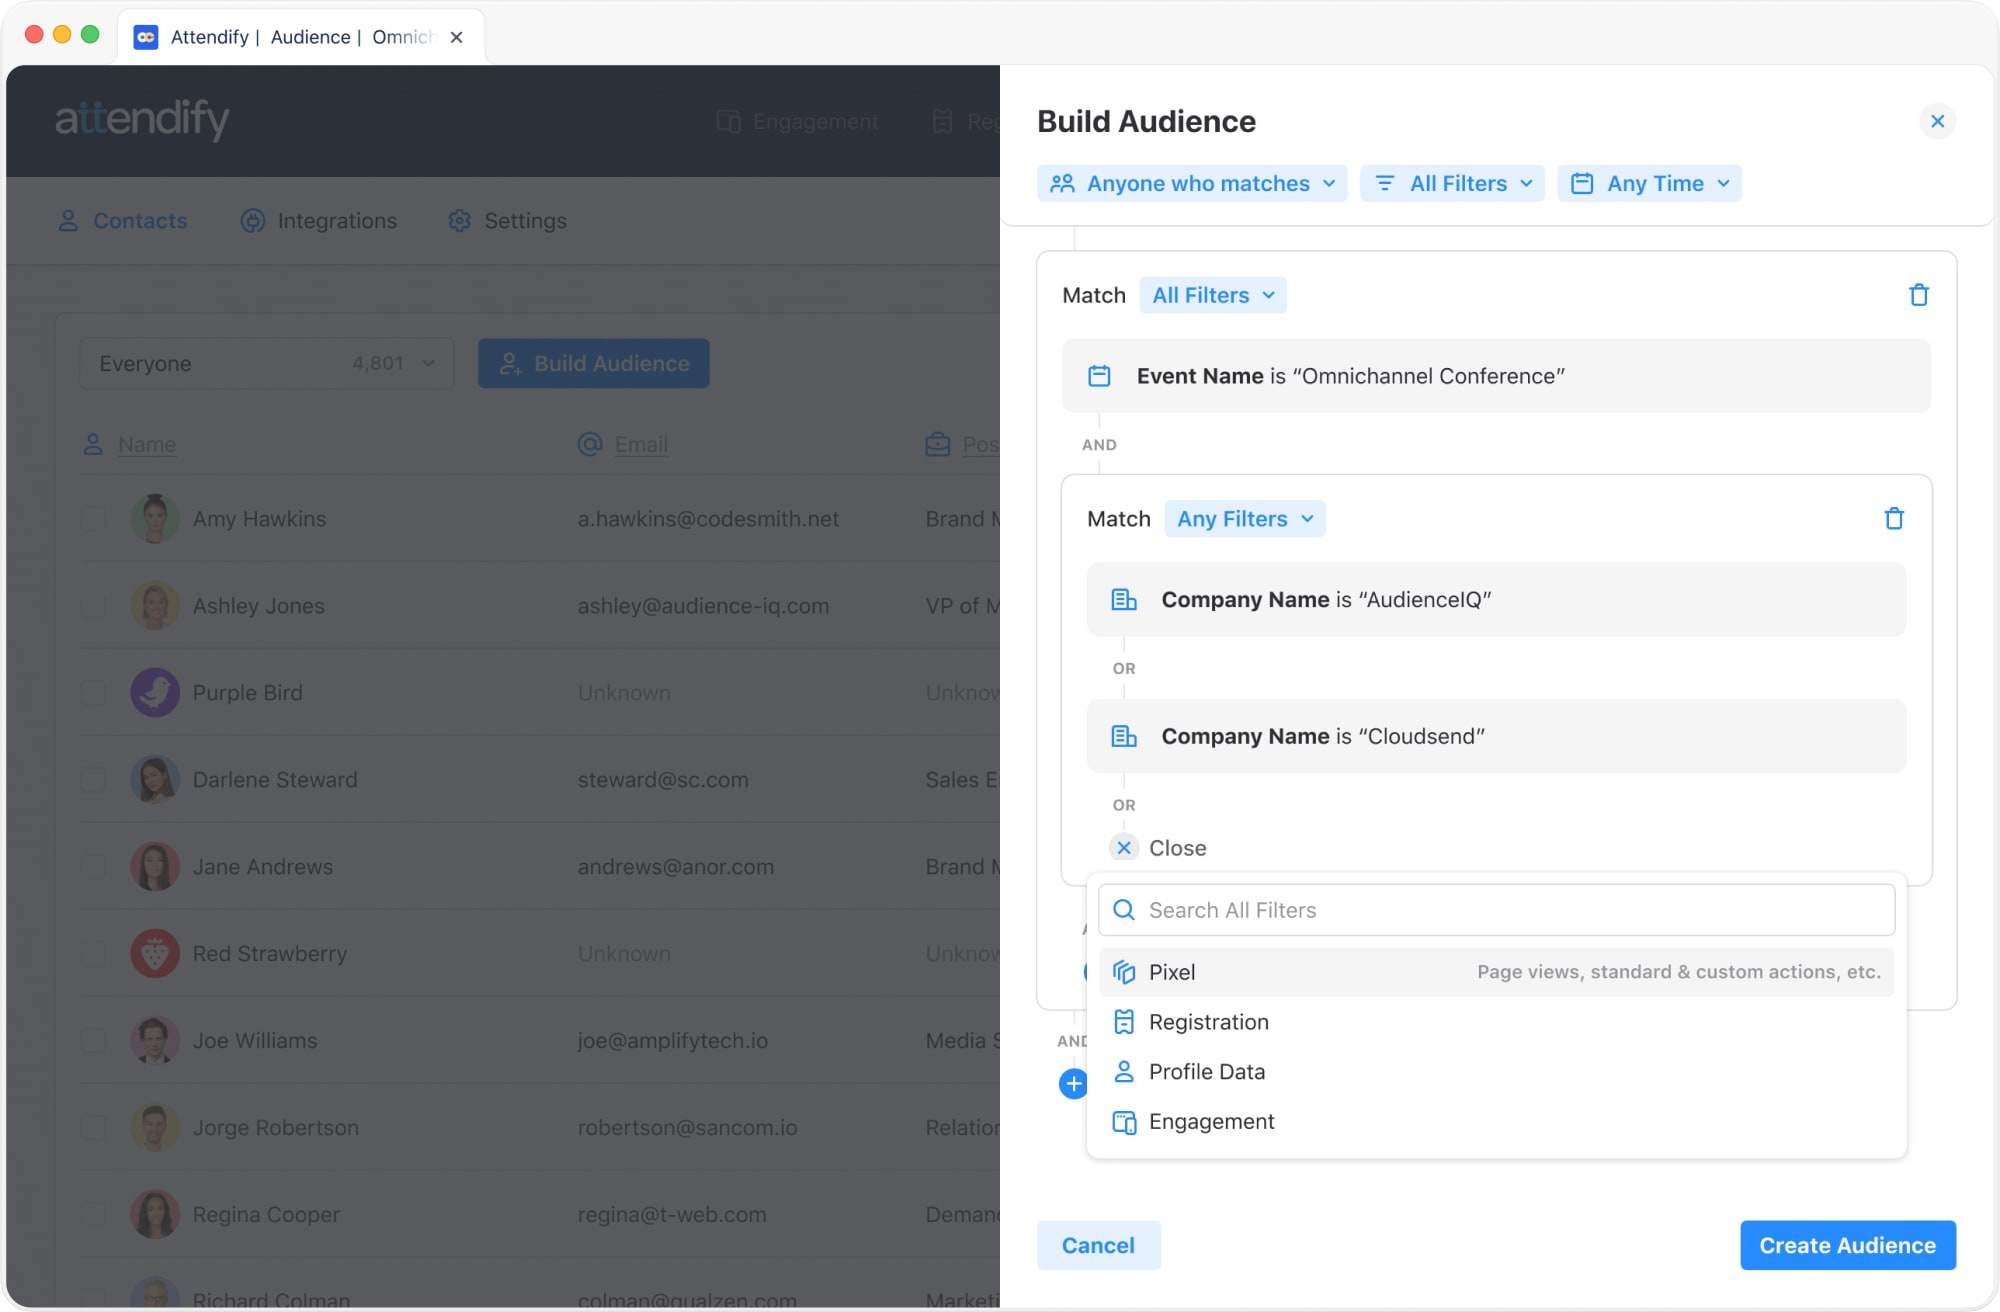 Use Attendify's advanced filtering & virtual event analytics to surface intent signals